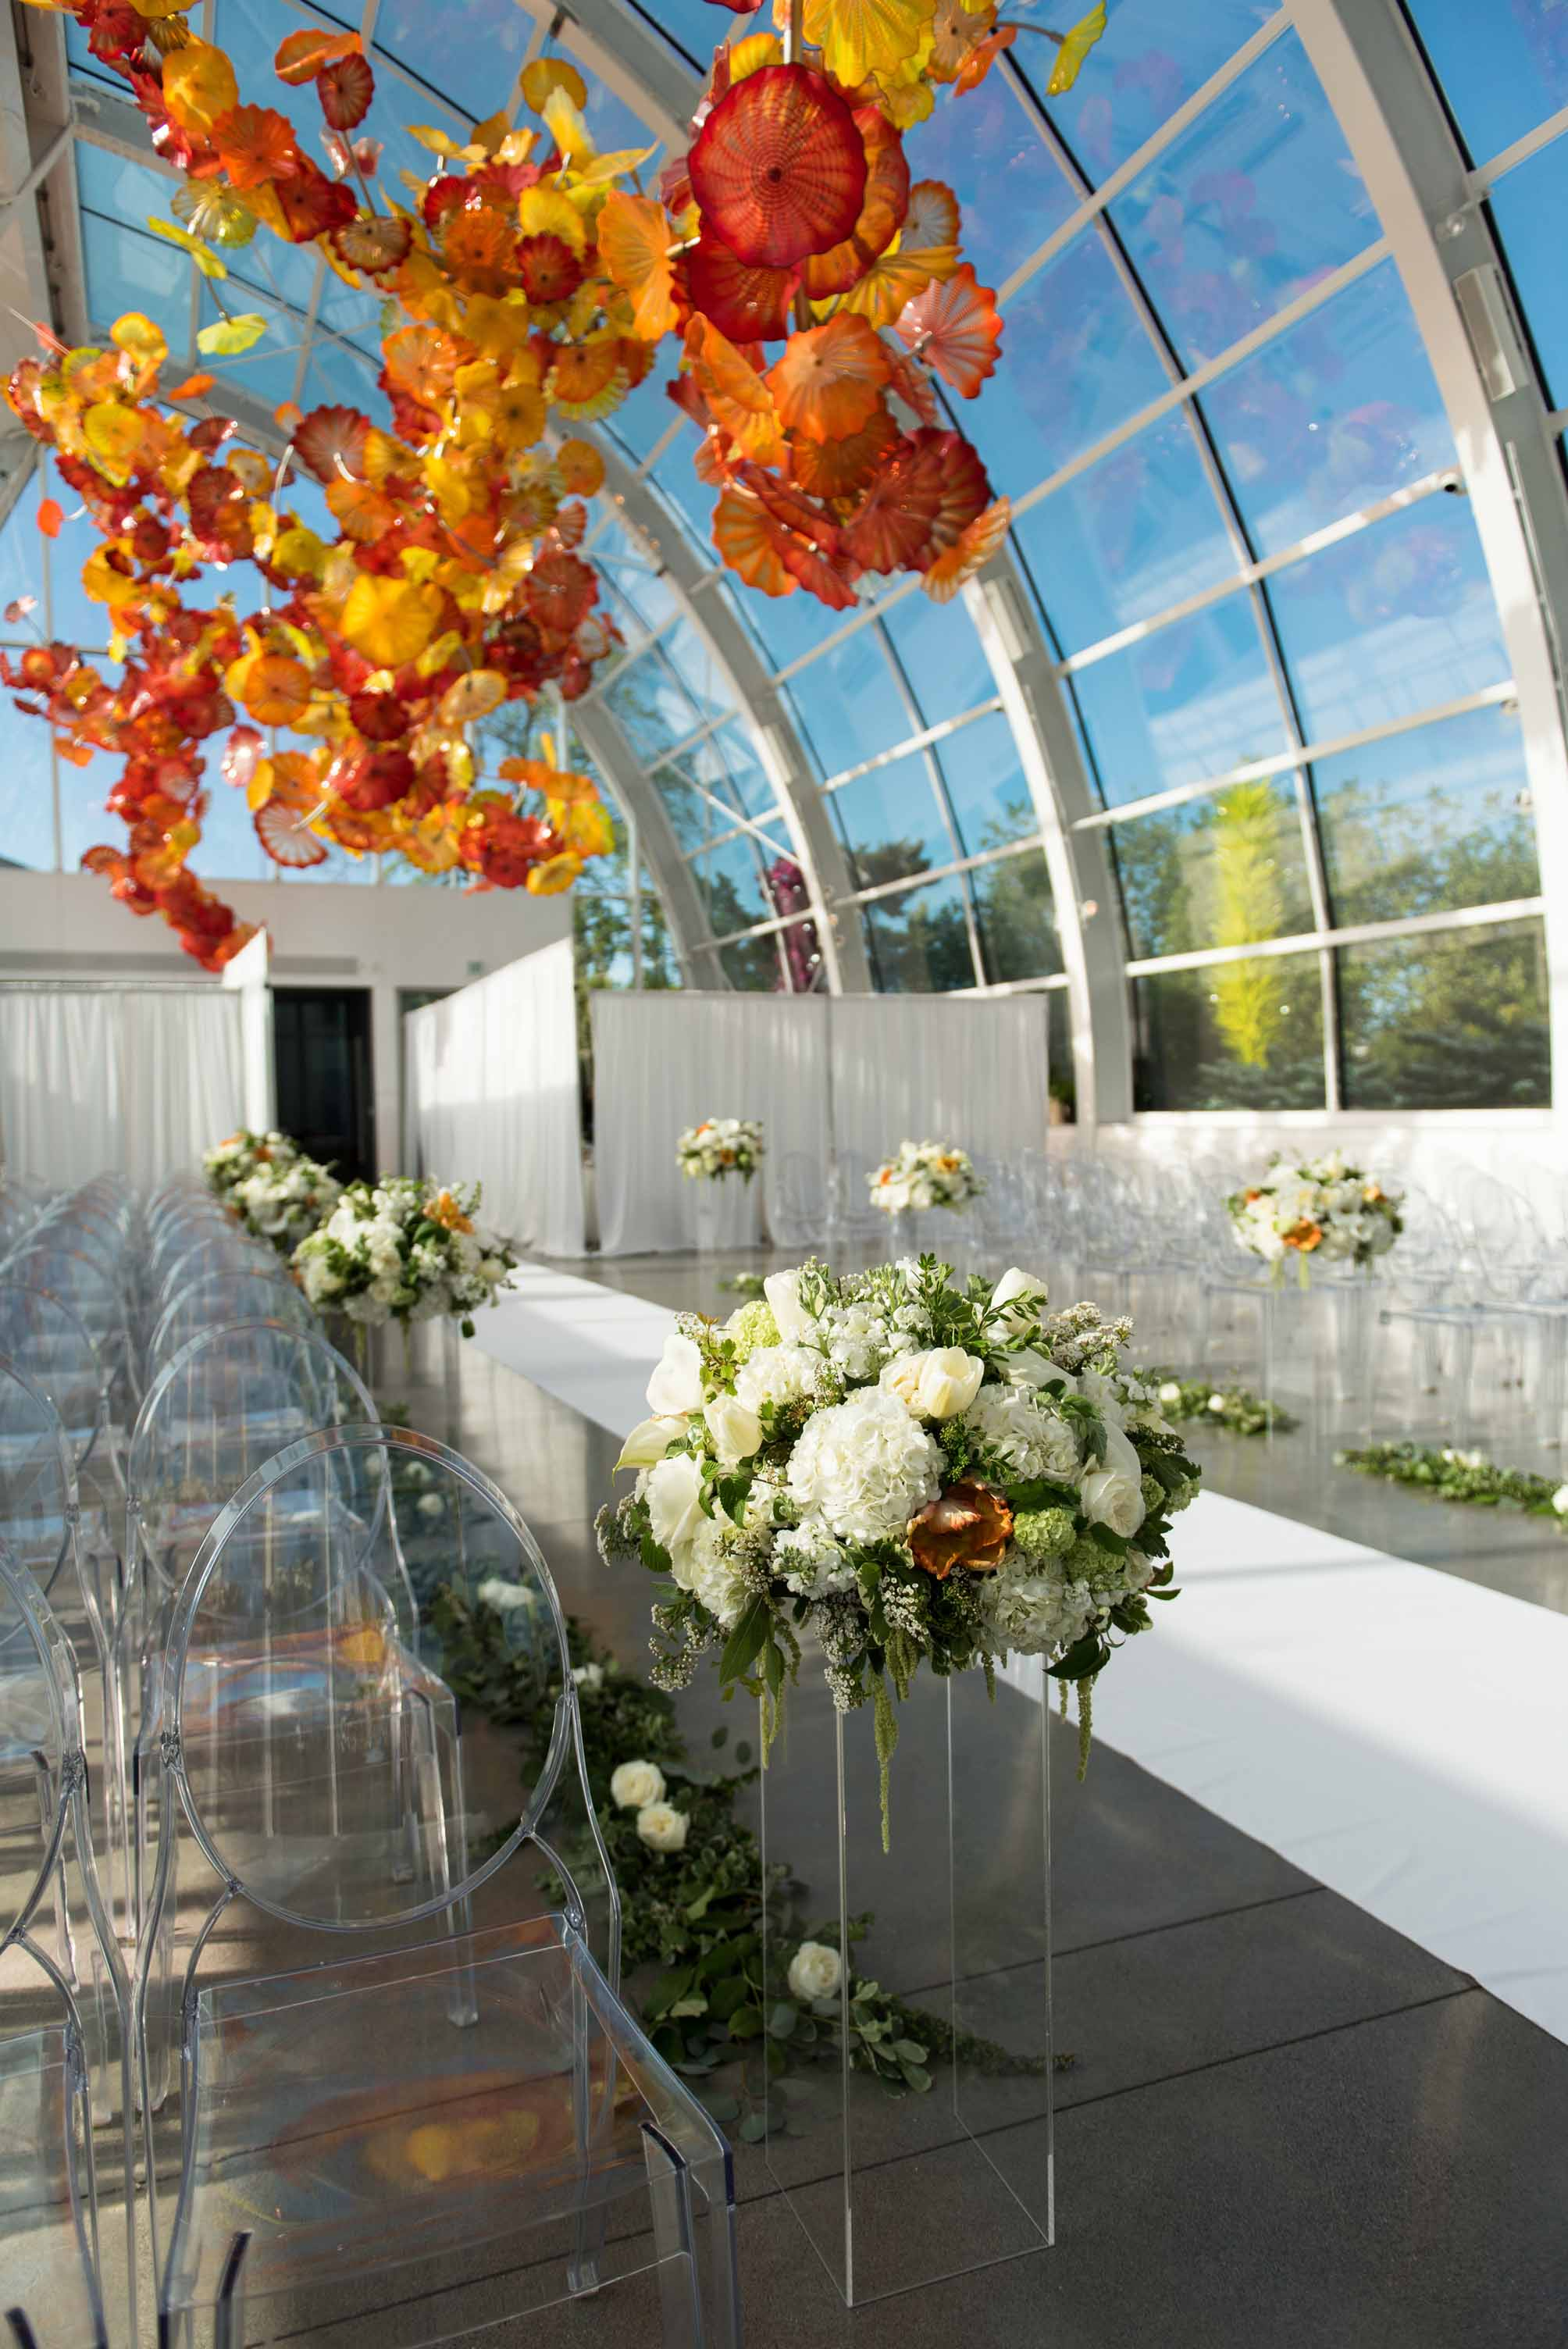 Wedding ceremony aisle at Chihuly Garden and Glass wedding with large white flower arrangements decorating the aisle - designed by Flora Nova Design